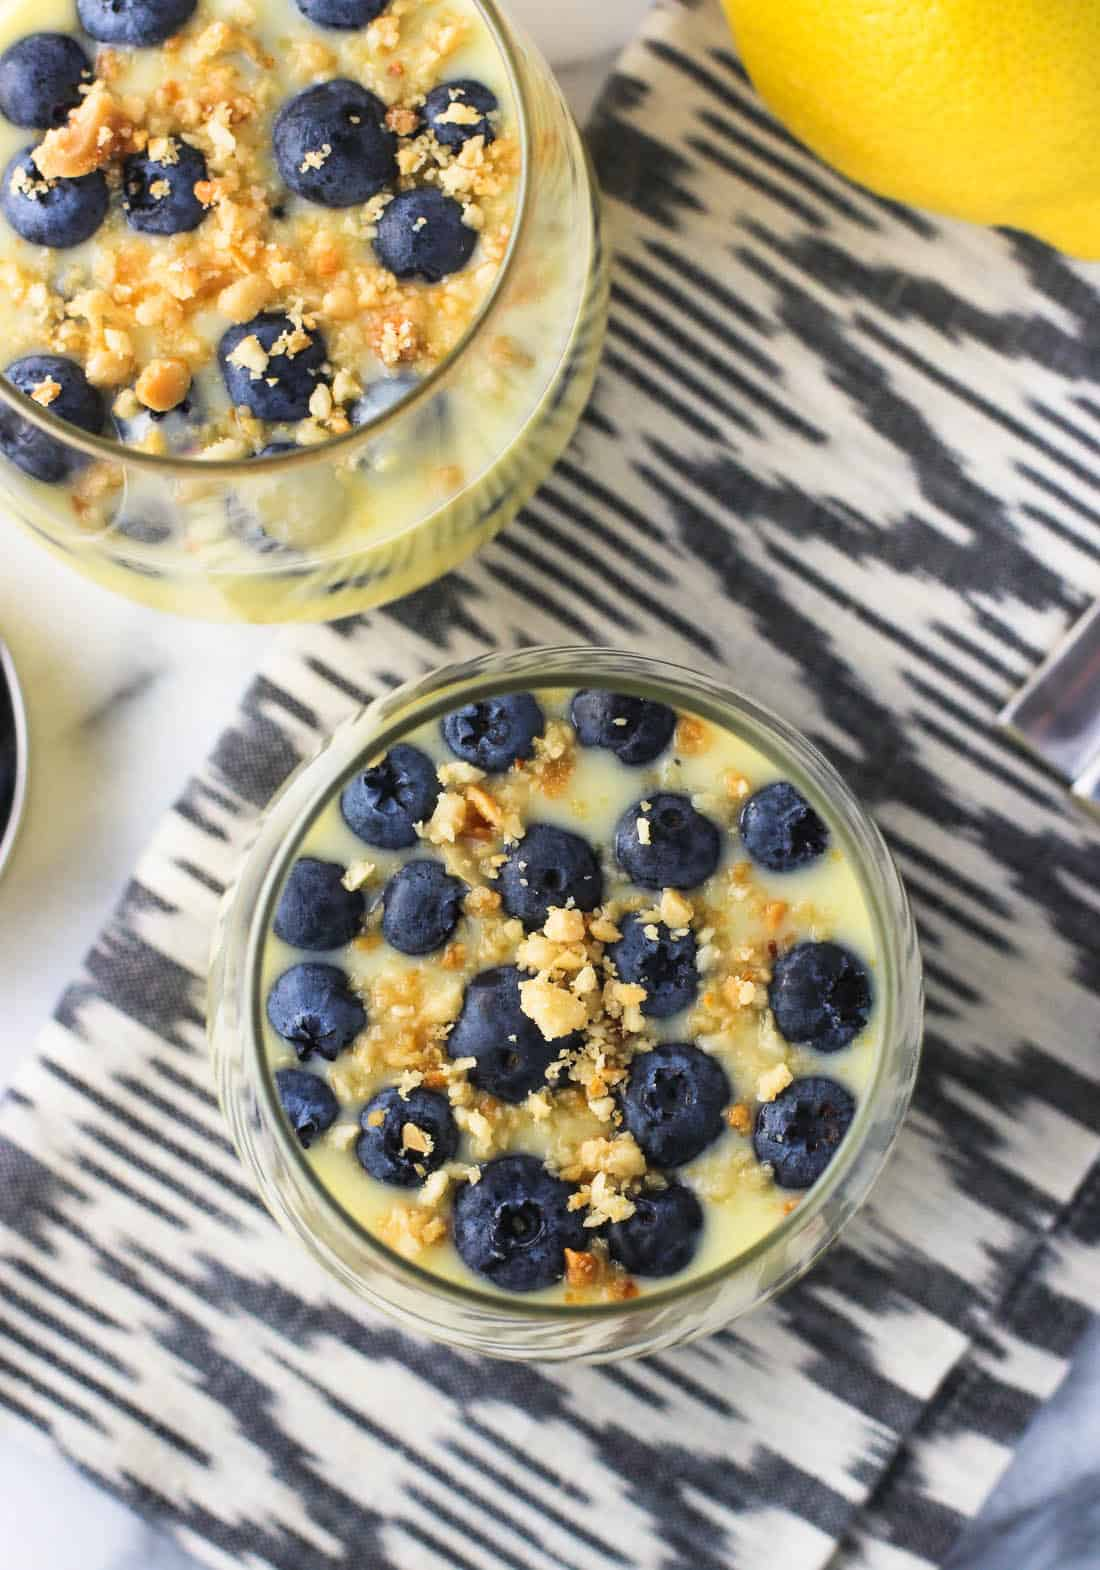 Perfectly tart and sweet, this dairy-free lemon pudding is a winner. It's made with coconut milk and coconut oil, and wonderful topped with fruit, nuts, and more.